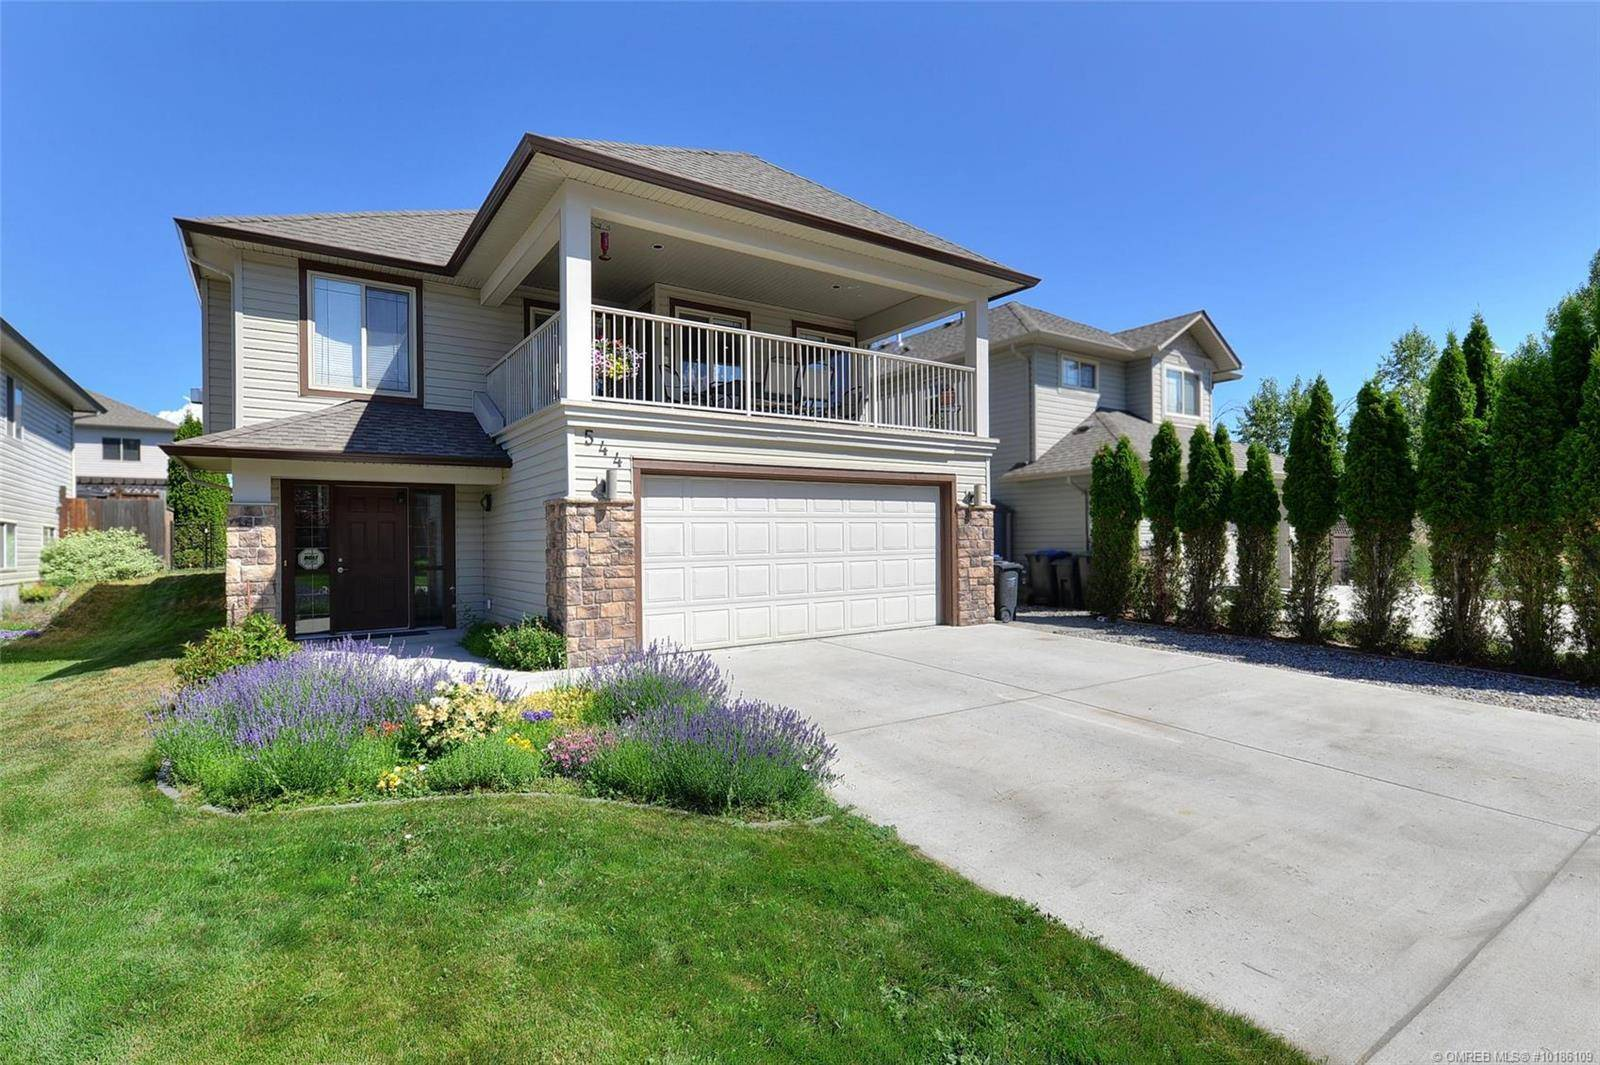 House for sale at 544 South Crest Dr Kelowna British Columbia - MLS: 10186109